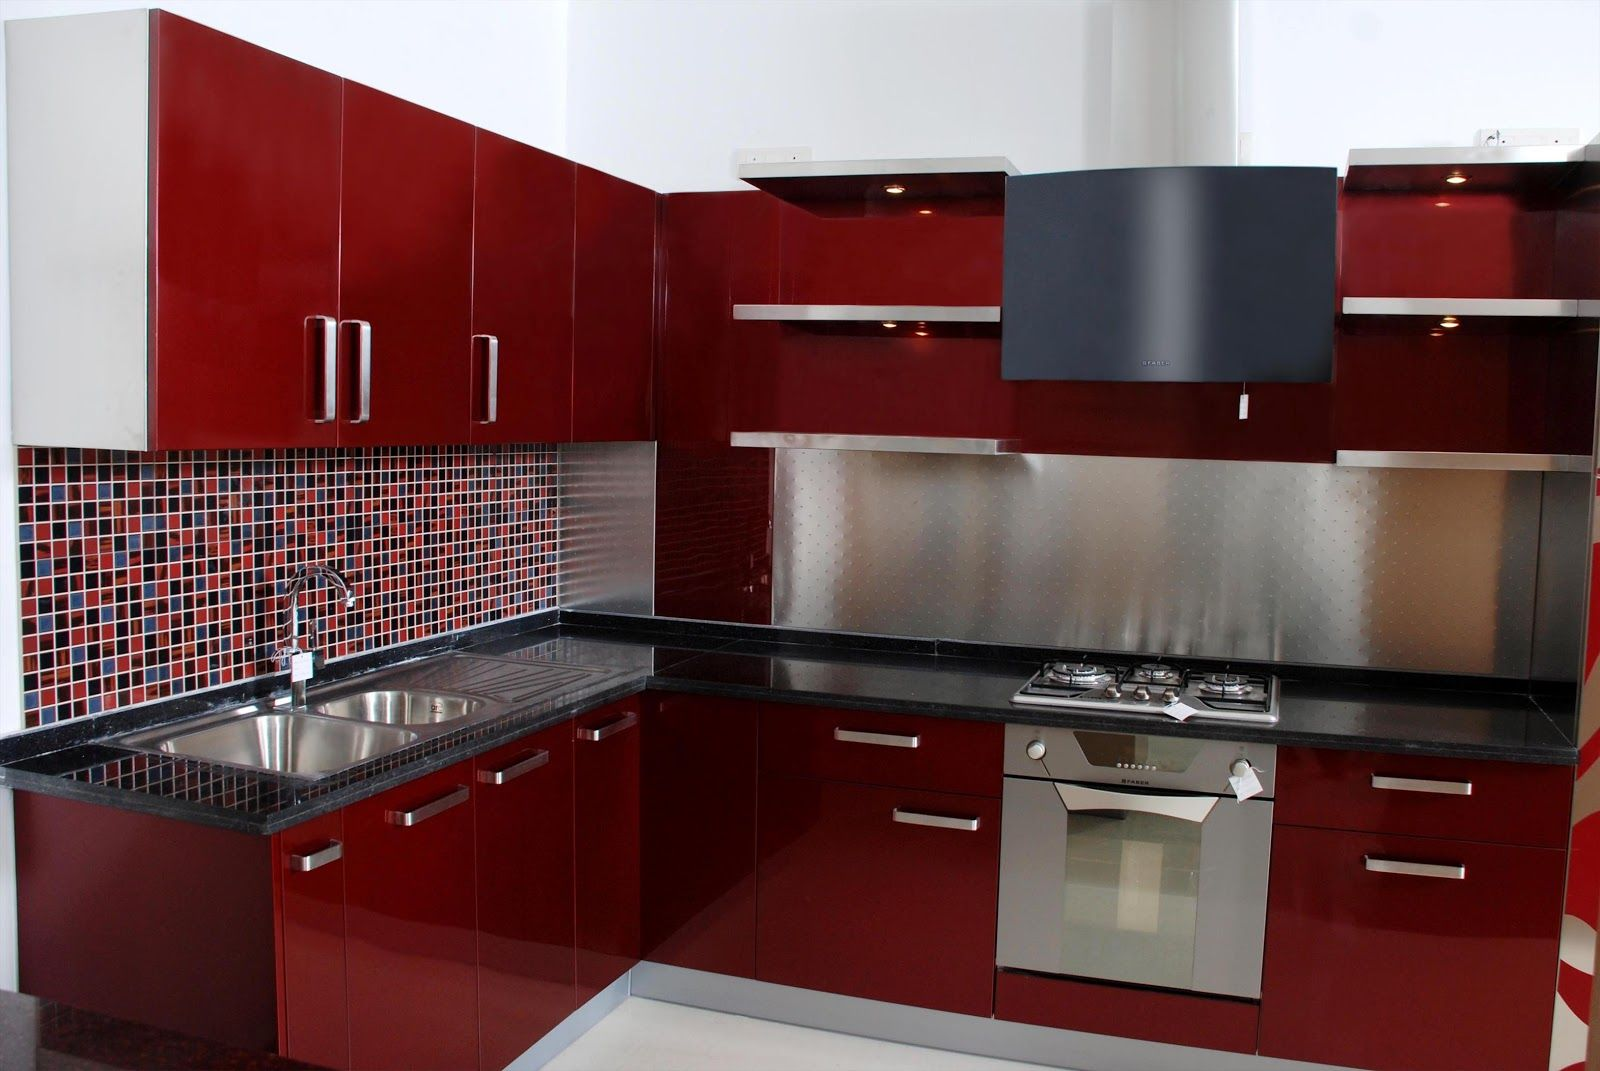 Parallel kitchen design india google search kitchen for L shaped bedroom cupboards